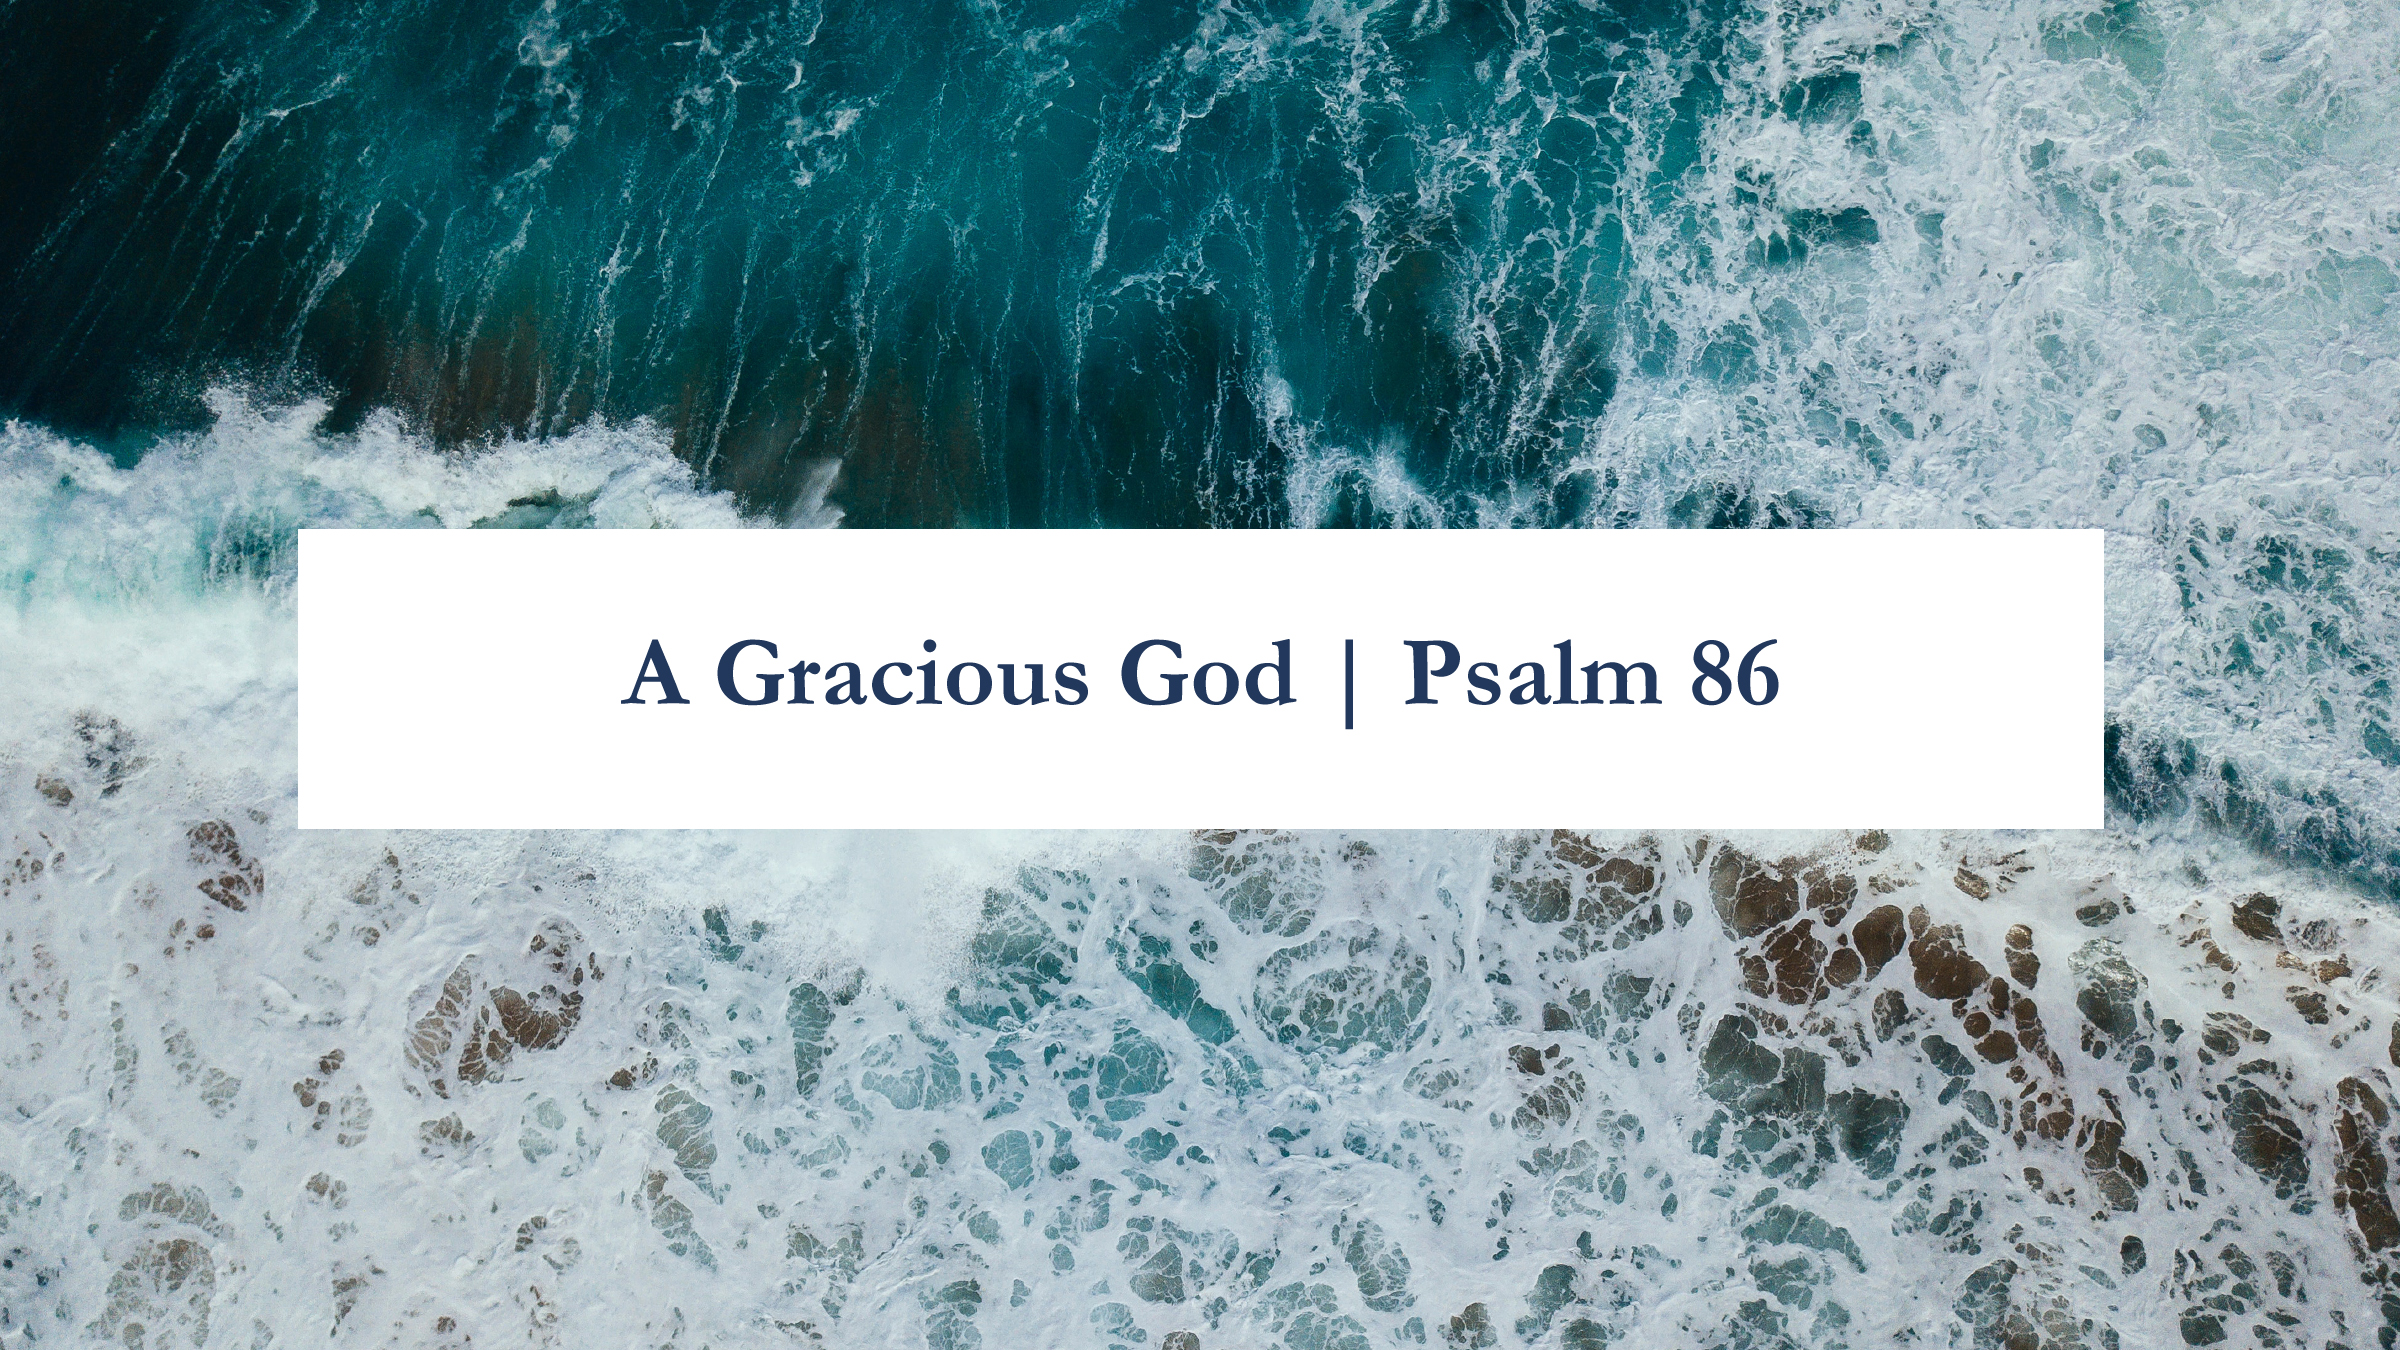 A Gracious God - Psalm 86.jpg